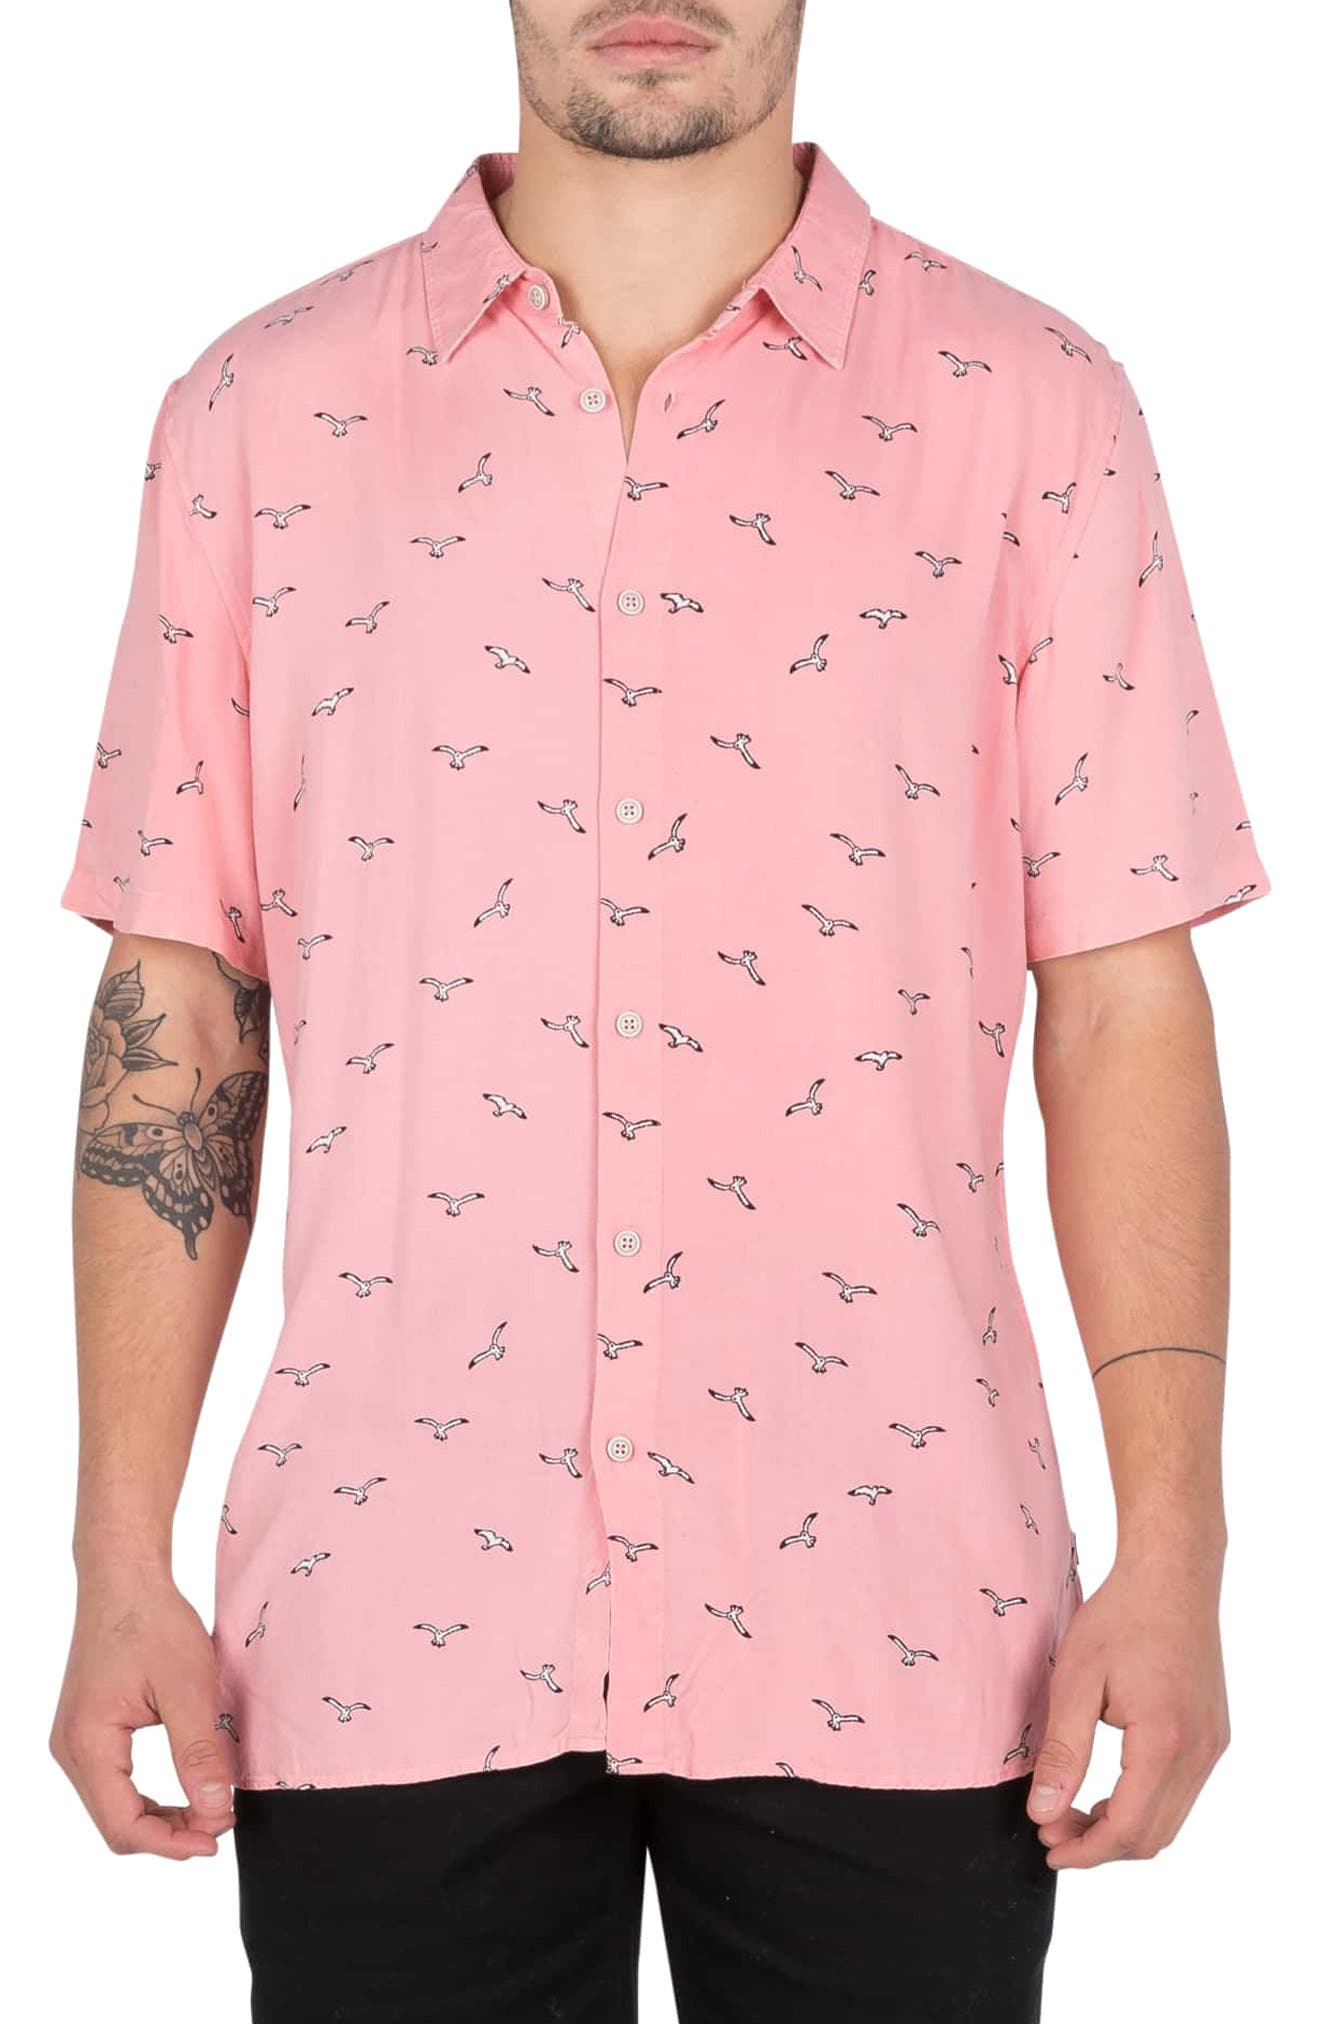 BARNEY COOLS Seagull Print Shirt in Pink Seagull